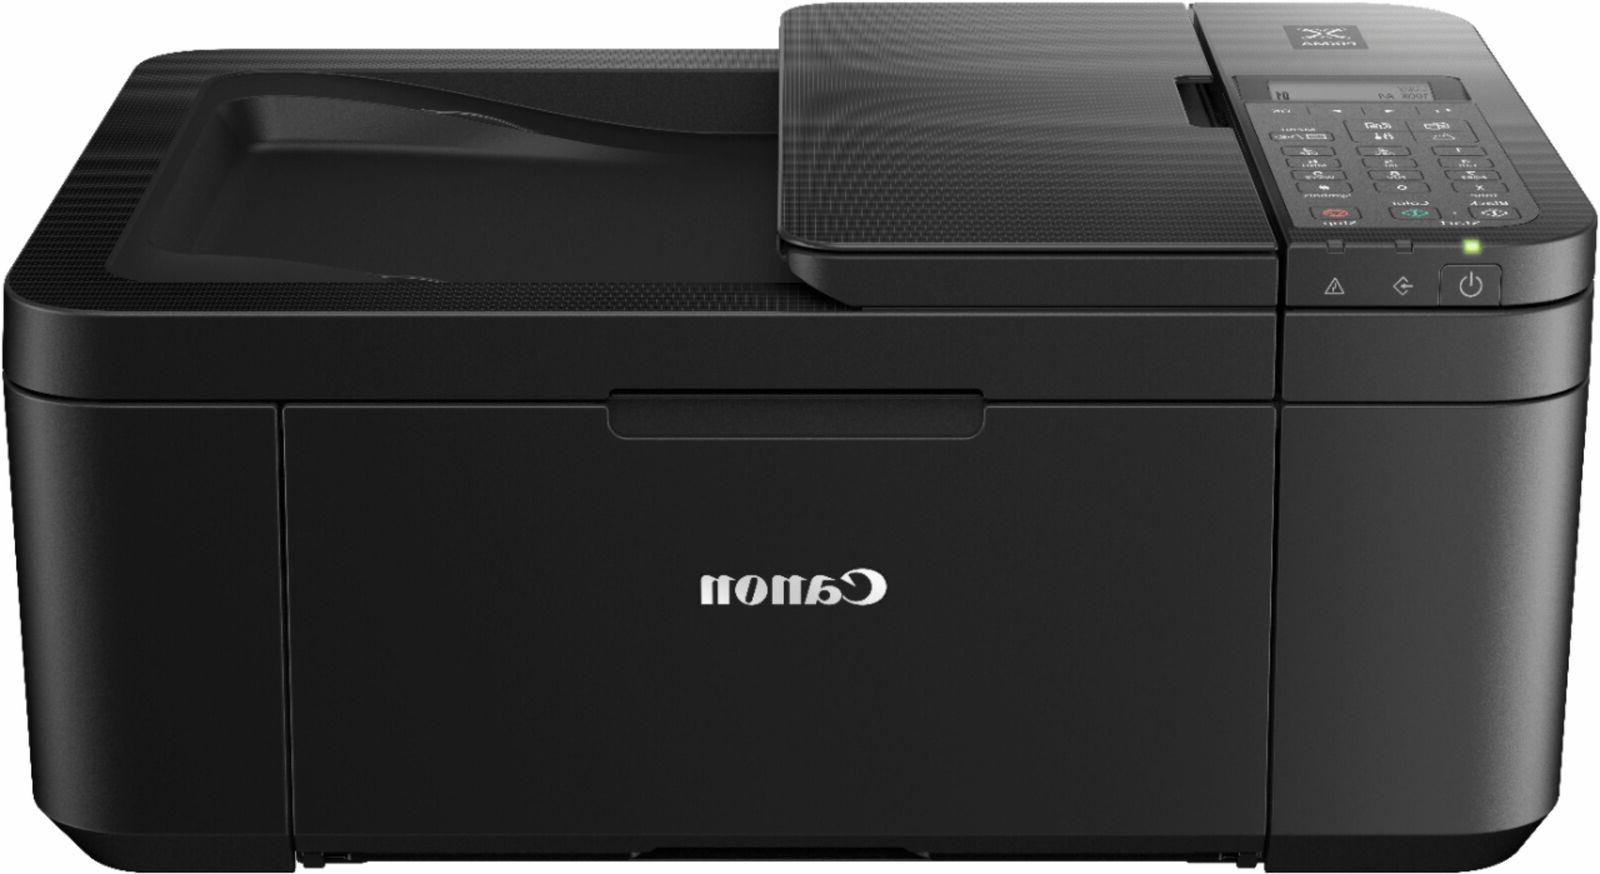 Canon TR4520 Wireless Color All-In-One Printer Scan Fax, Ink Included